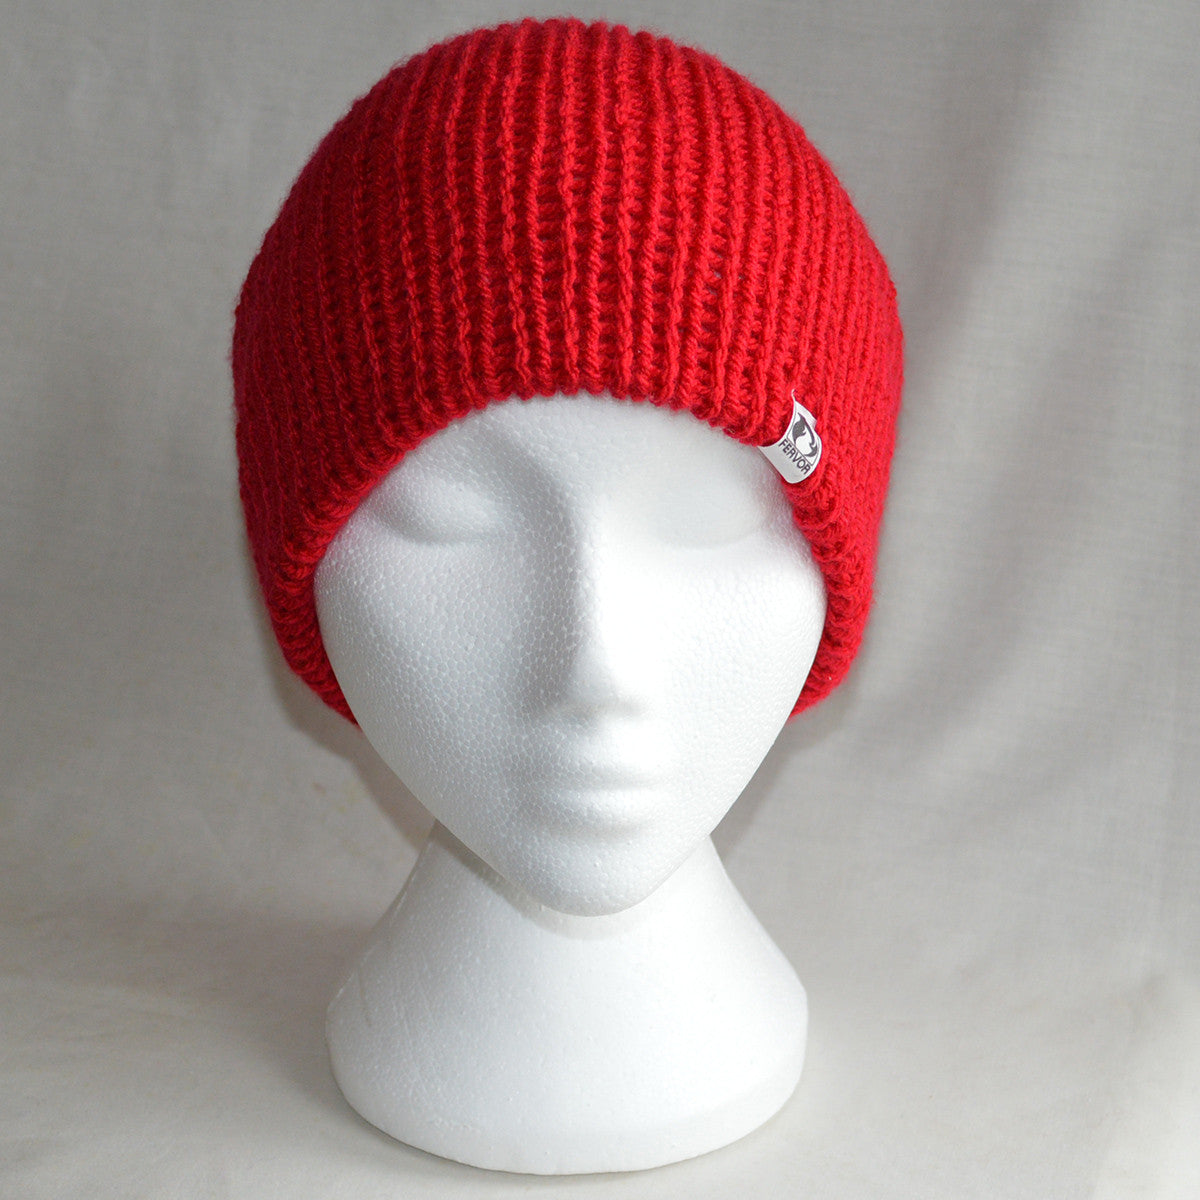 "'Trawler"" Red Slouch."